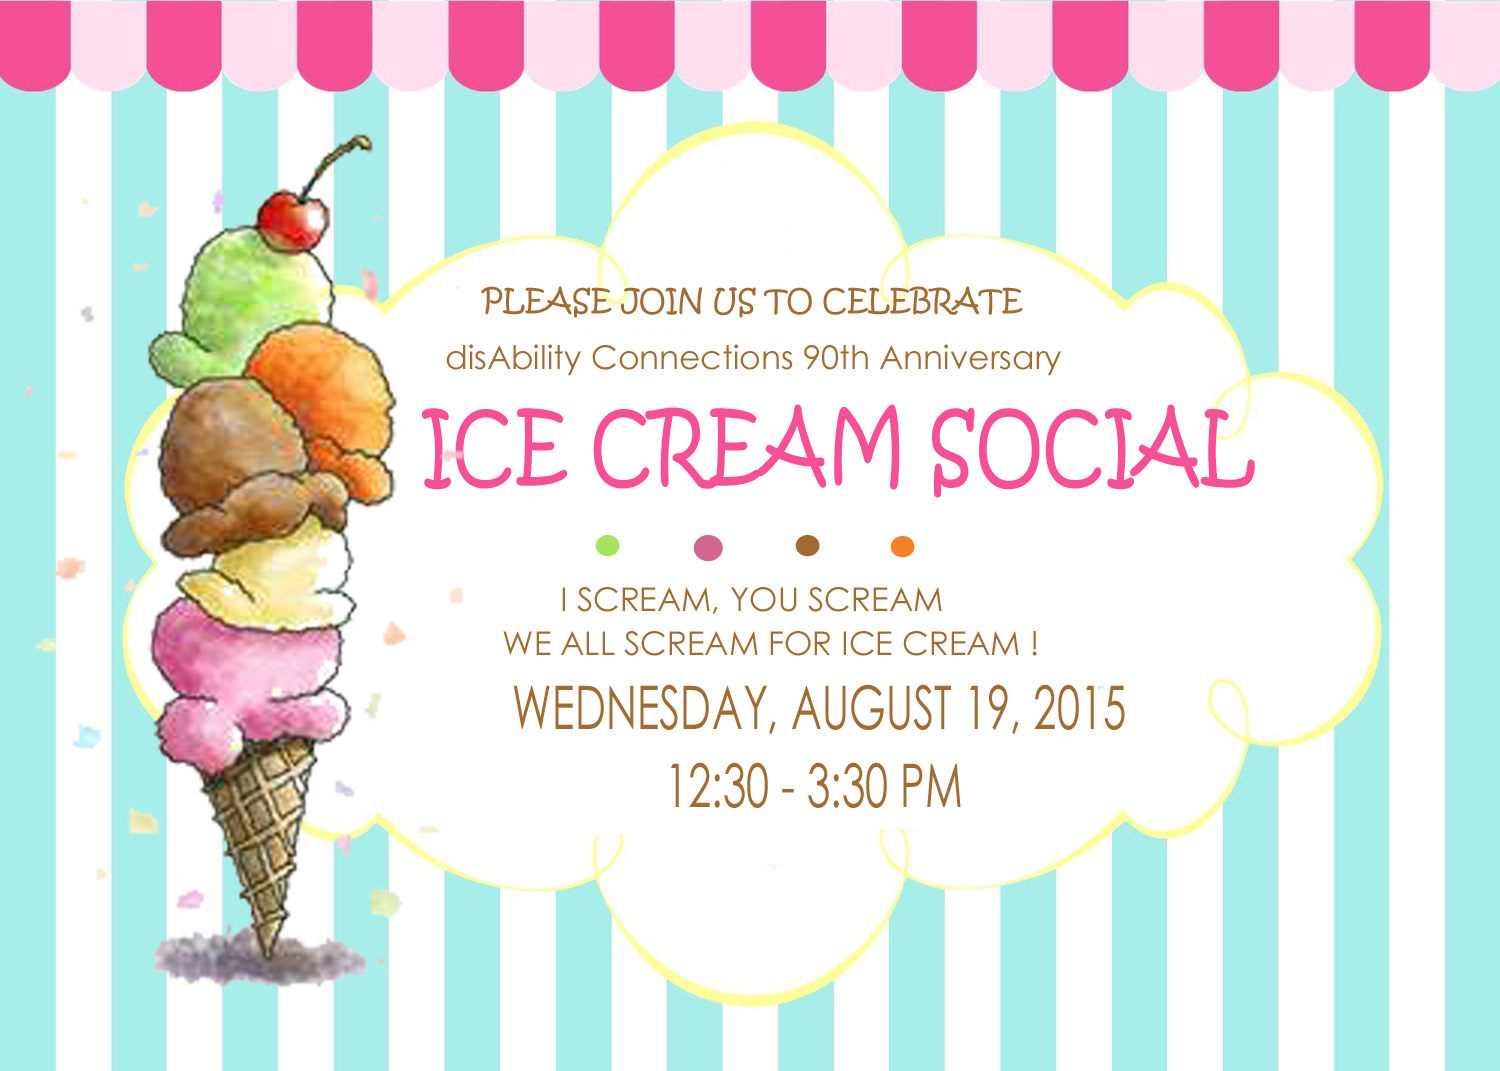 Disability Connections Inc Ice Cream Social 90th